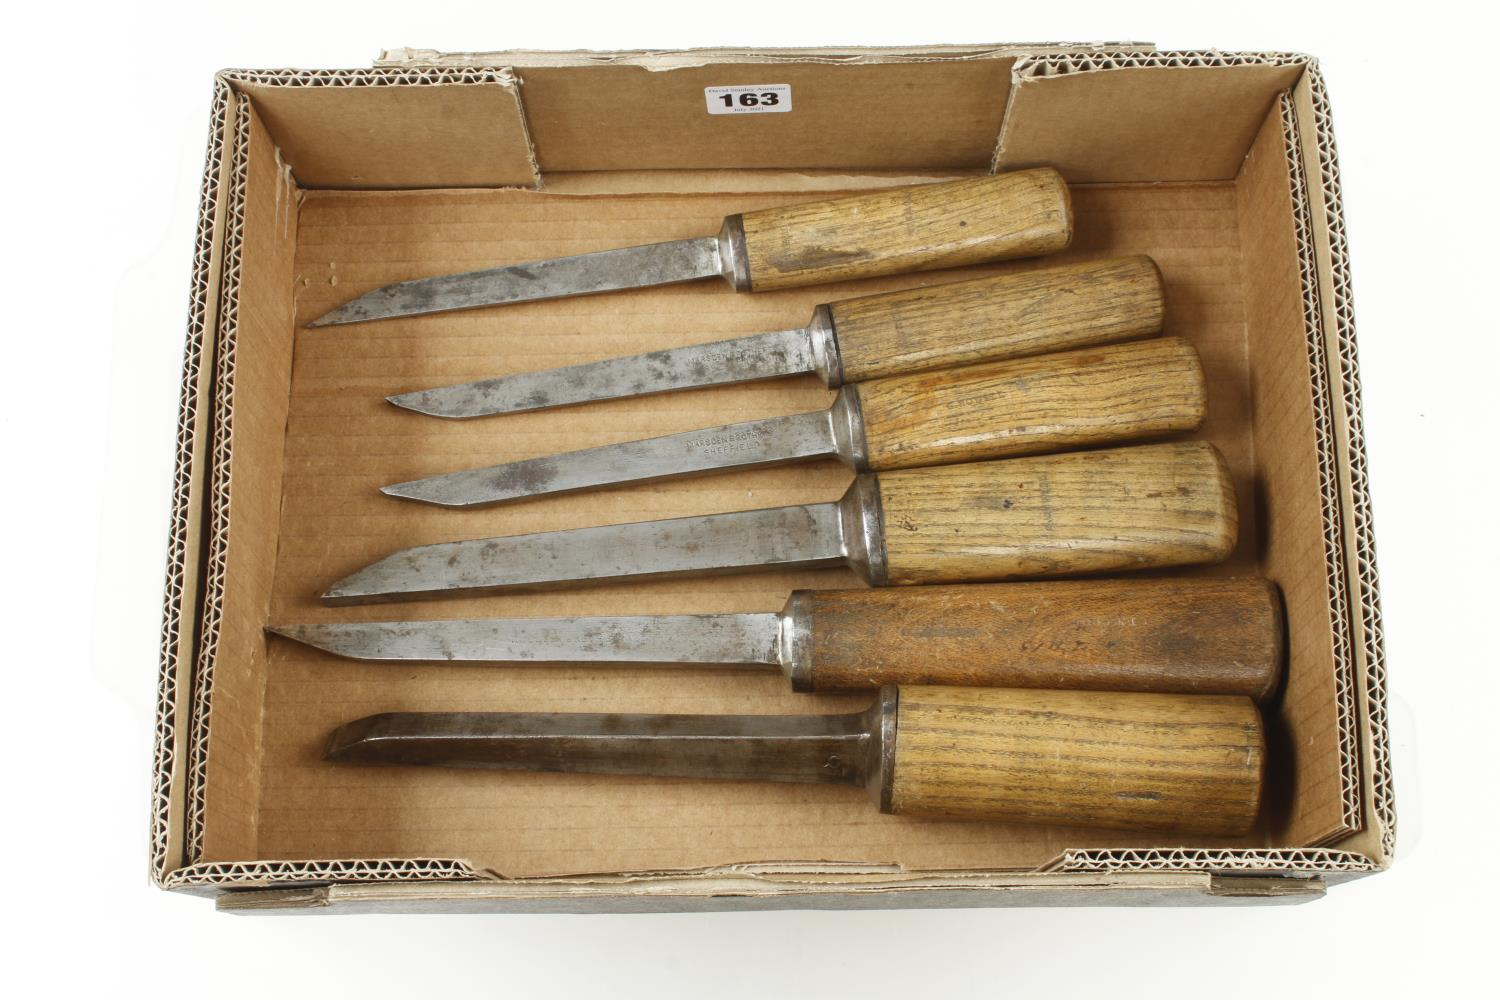 """Six mortice chisels 3/16"""" to 3/4"""" G+ - Image 2 of 2"""